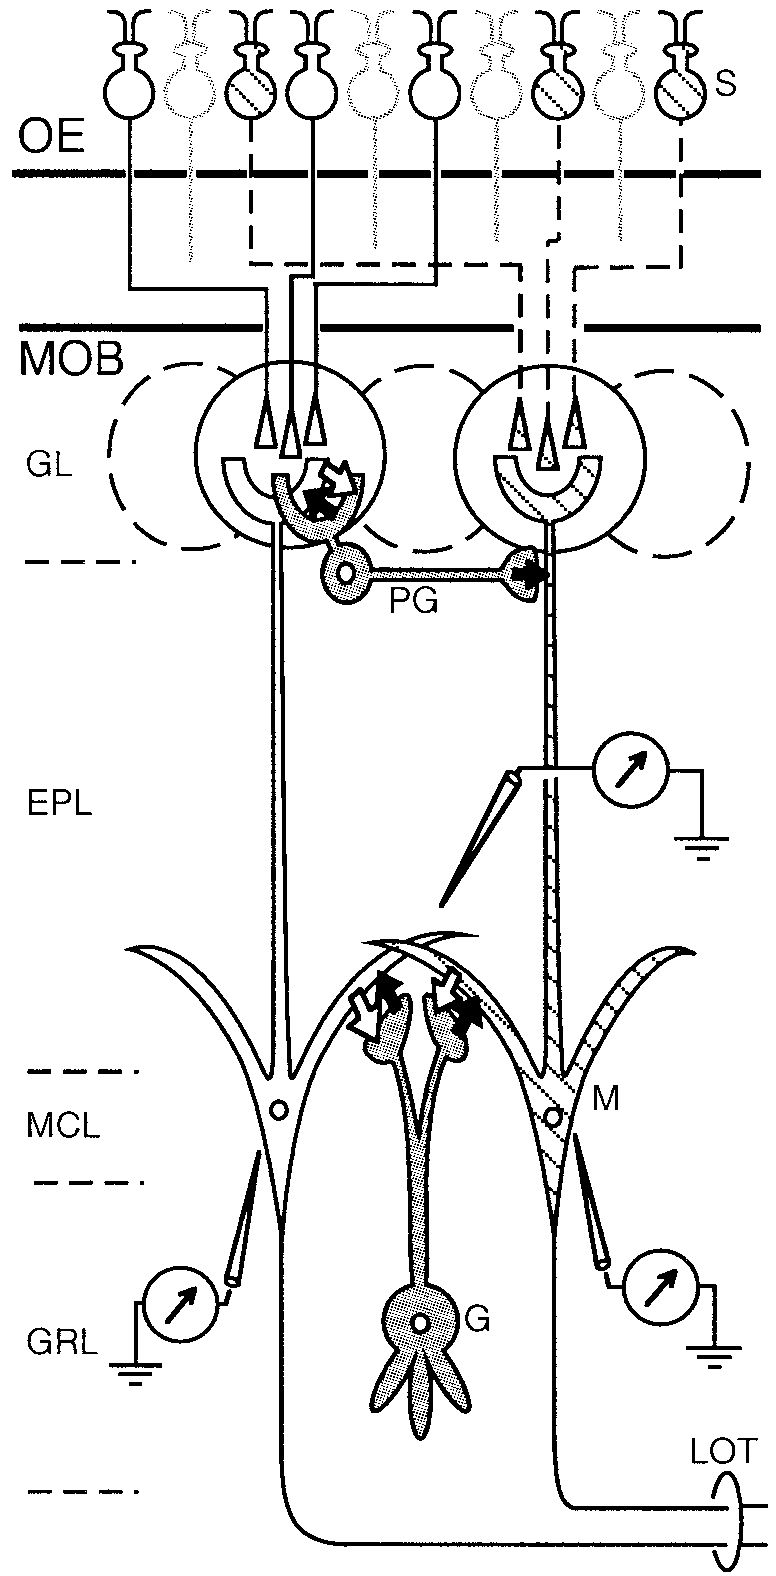 medium resolution of schematic diagram illustrating the basic neuronal circuit of the main olfactory bulb and the arrangement of